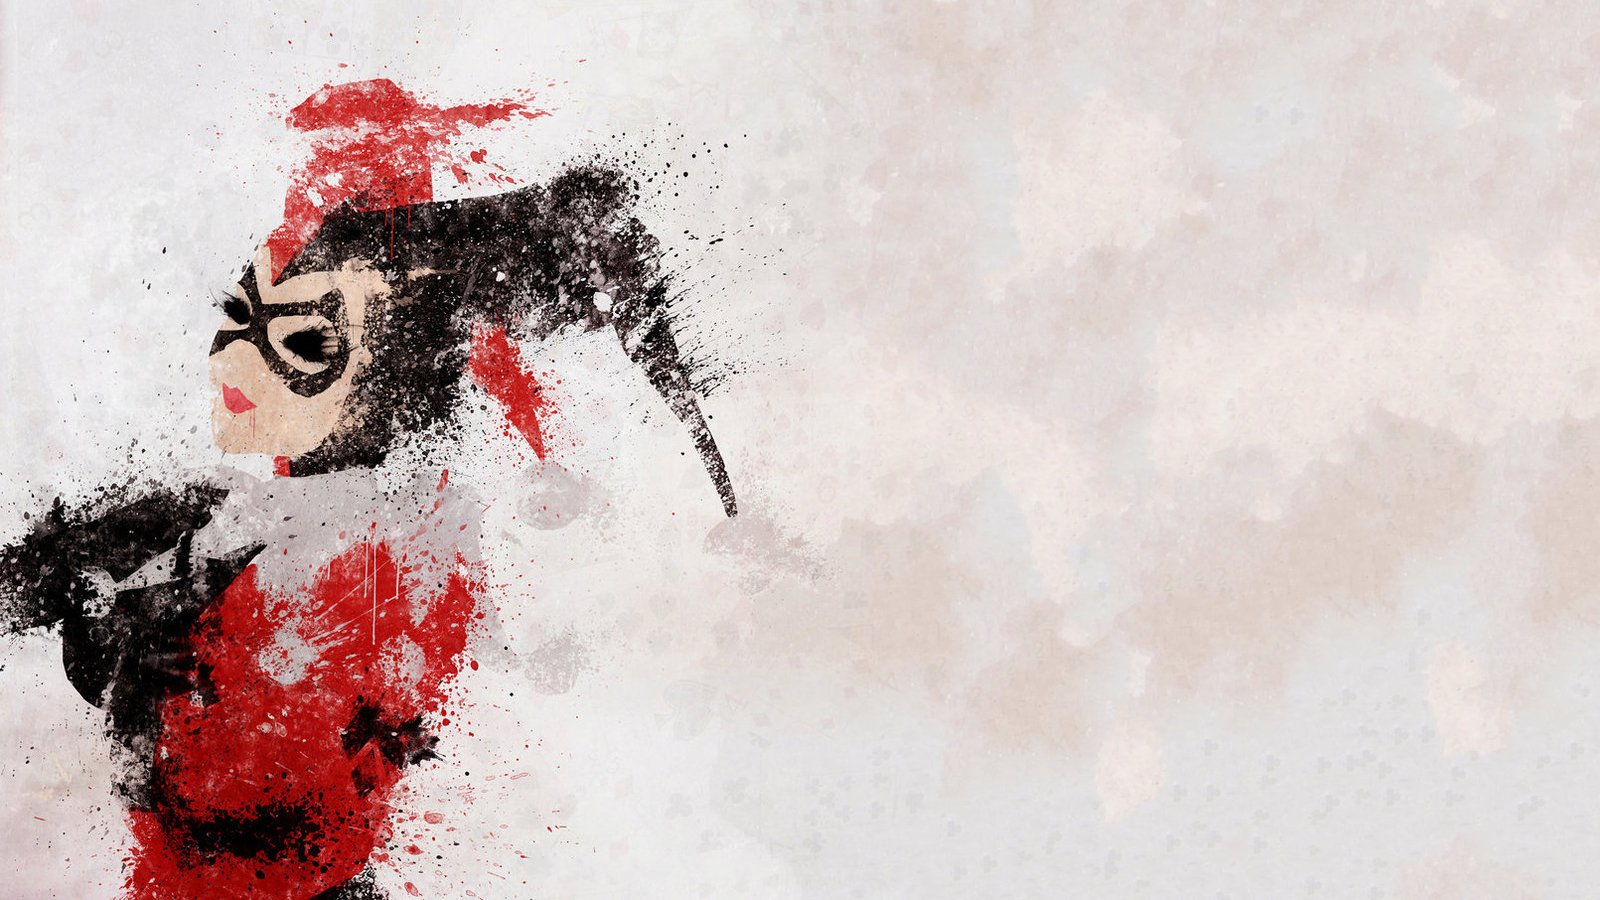 harley quinn suicide squad wallpaper